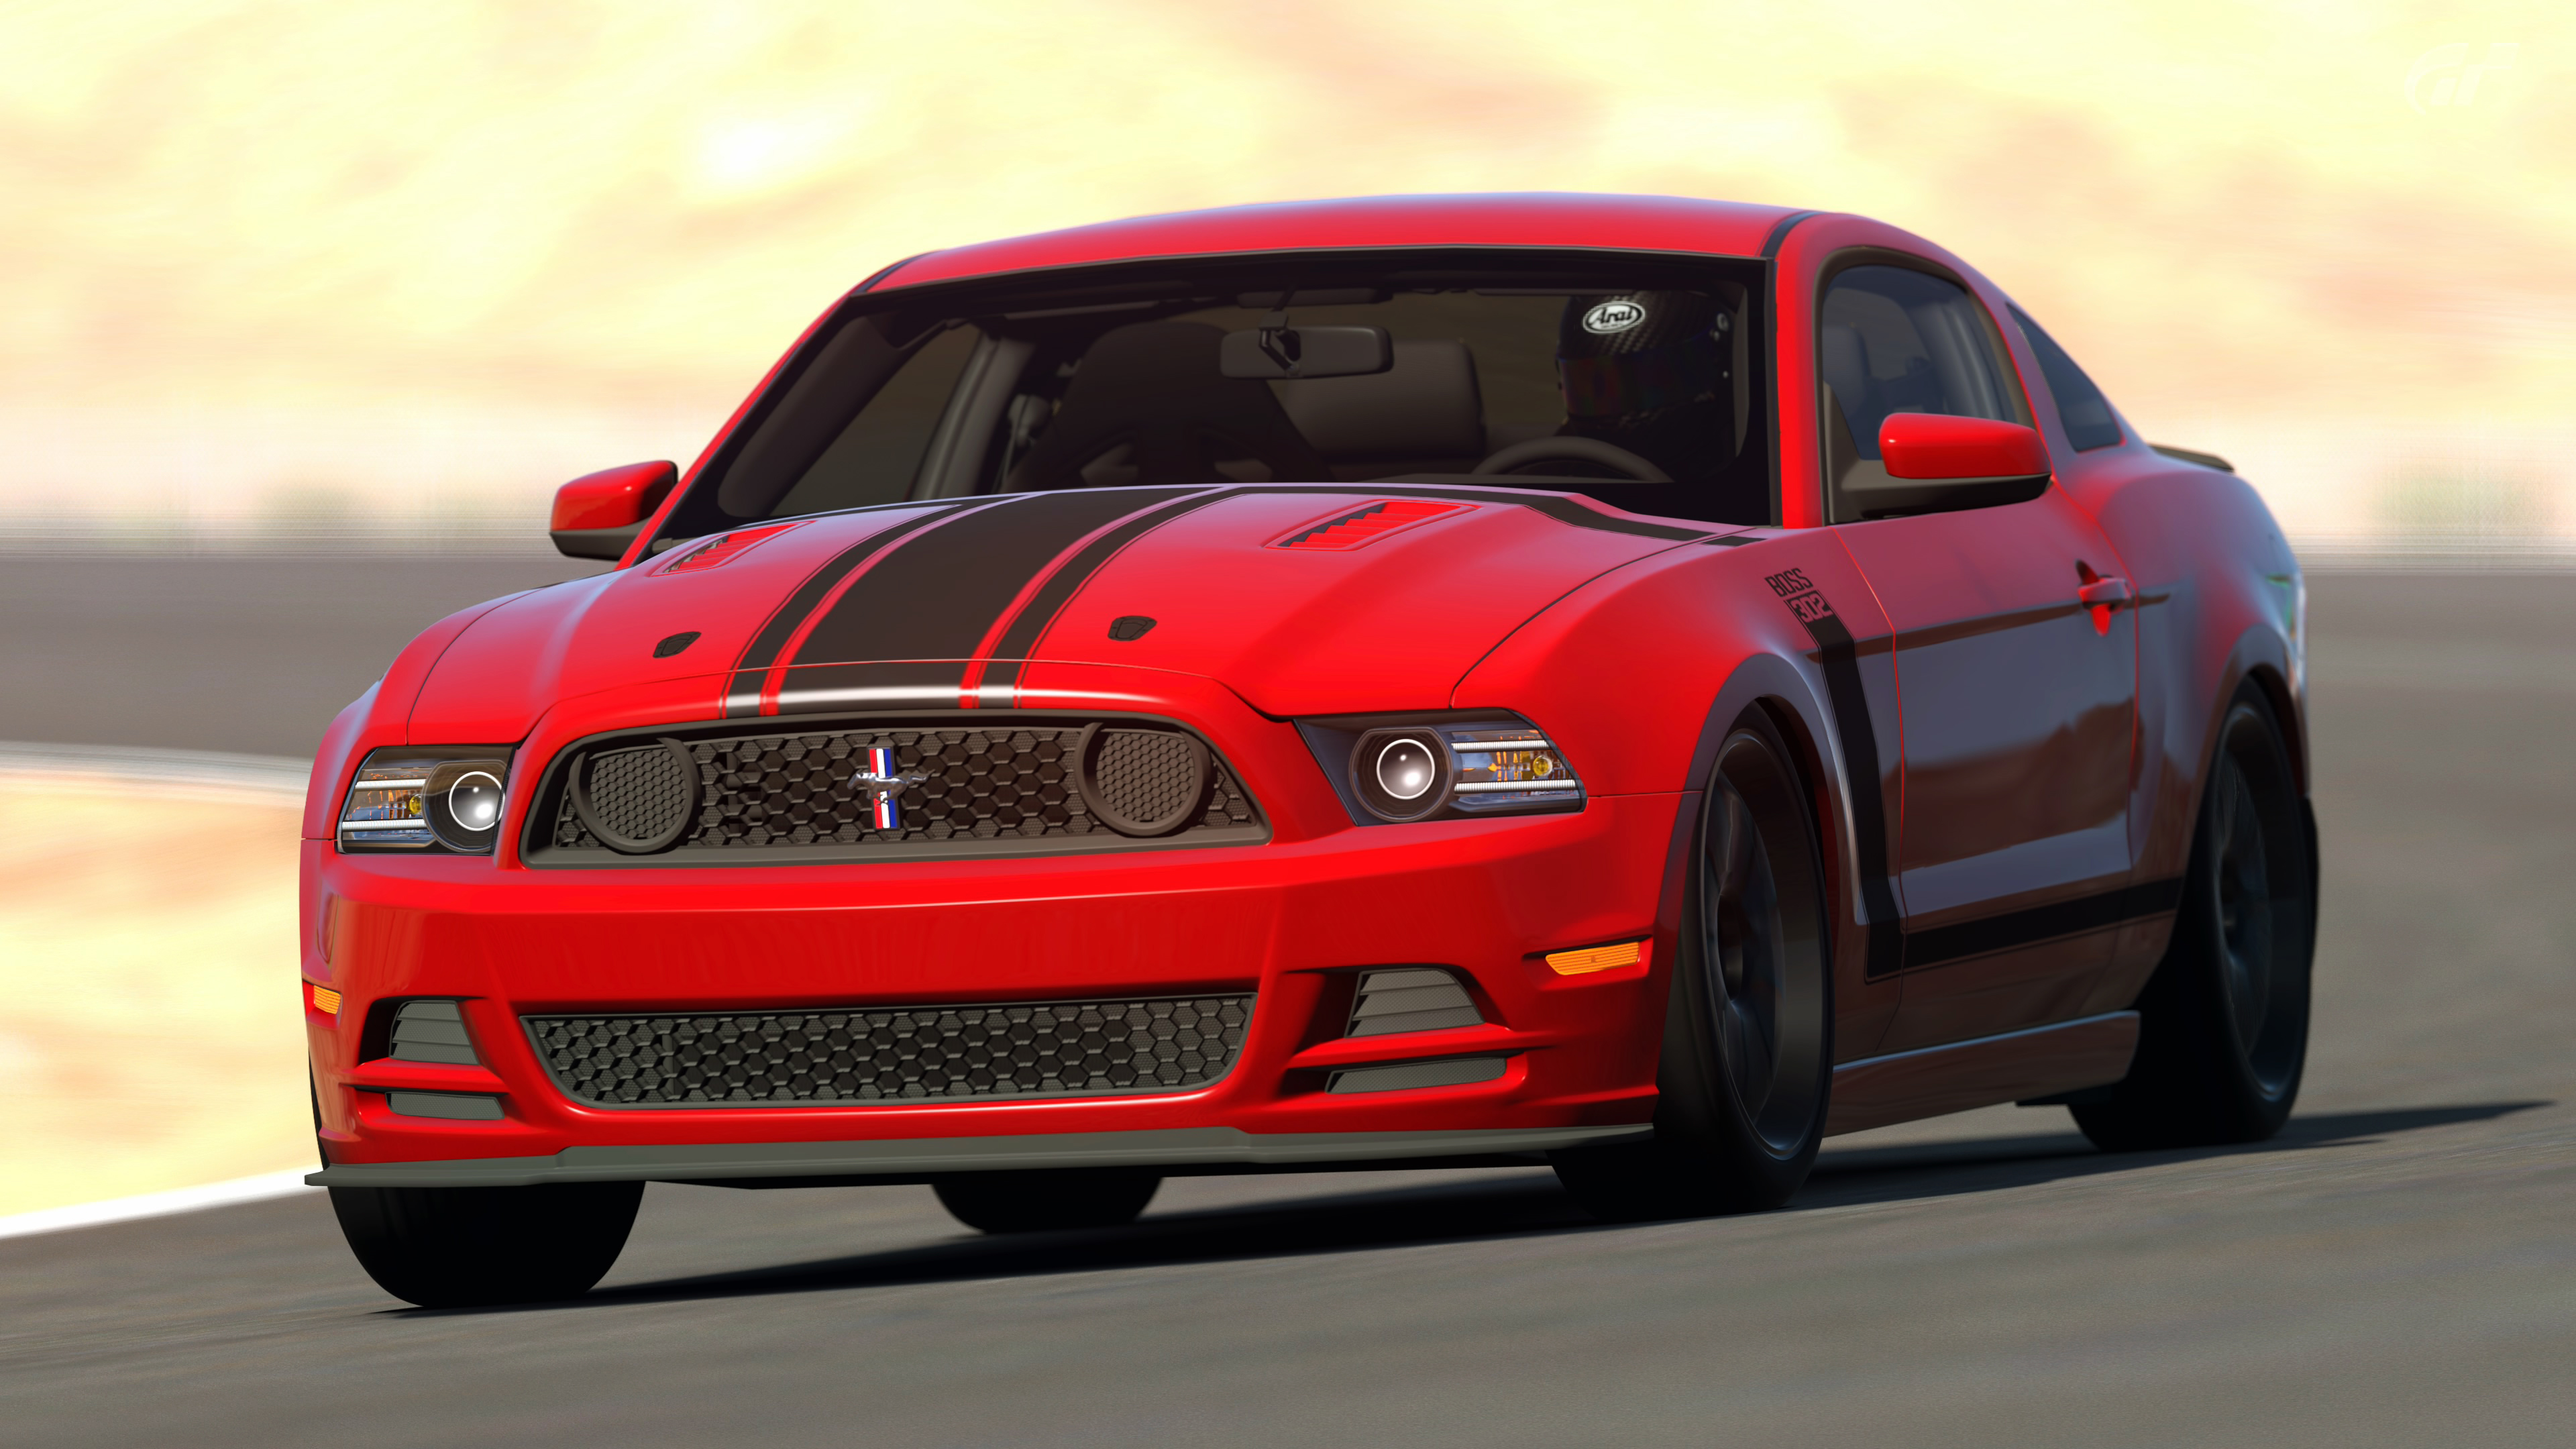 2013 ford mustang boss 302 gran turismo 6 by vertualissimo on deviantart. Black Bedroom Furniture Sets. Home Design Ideas